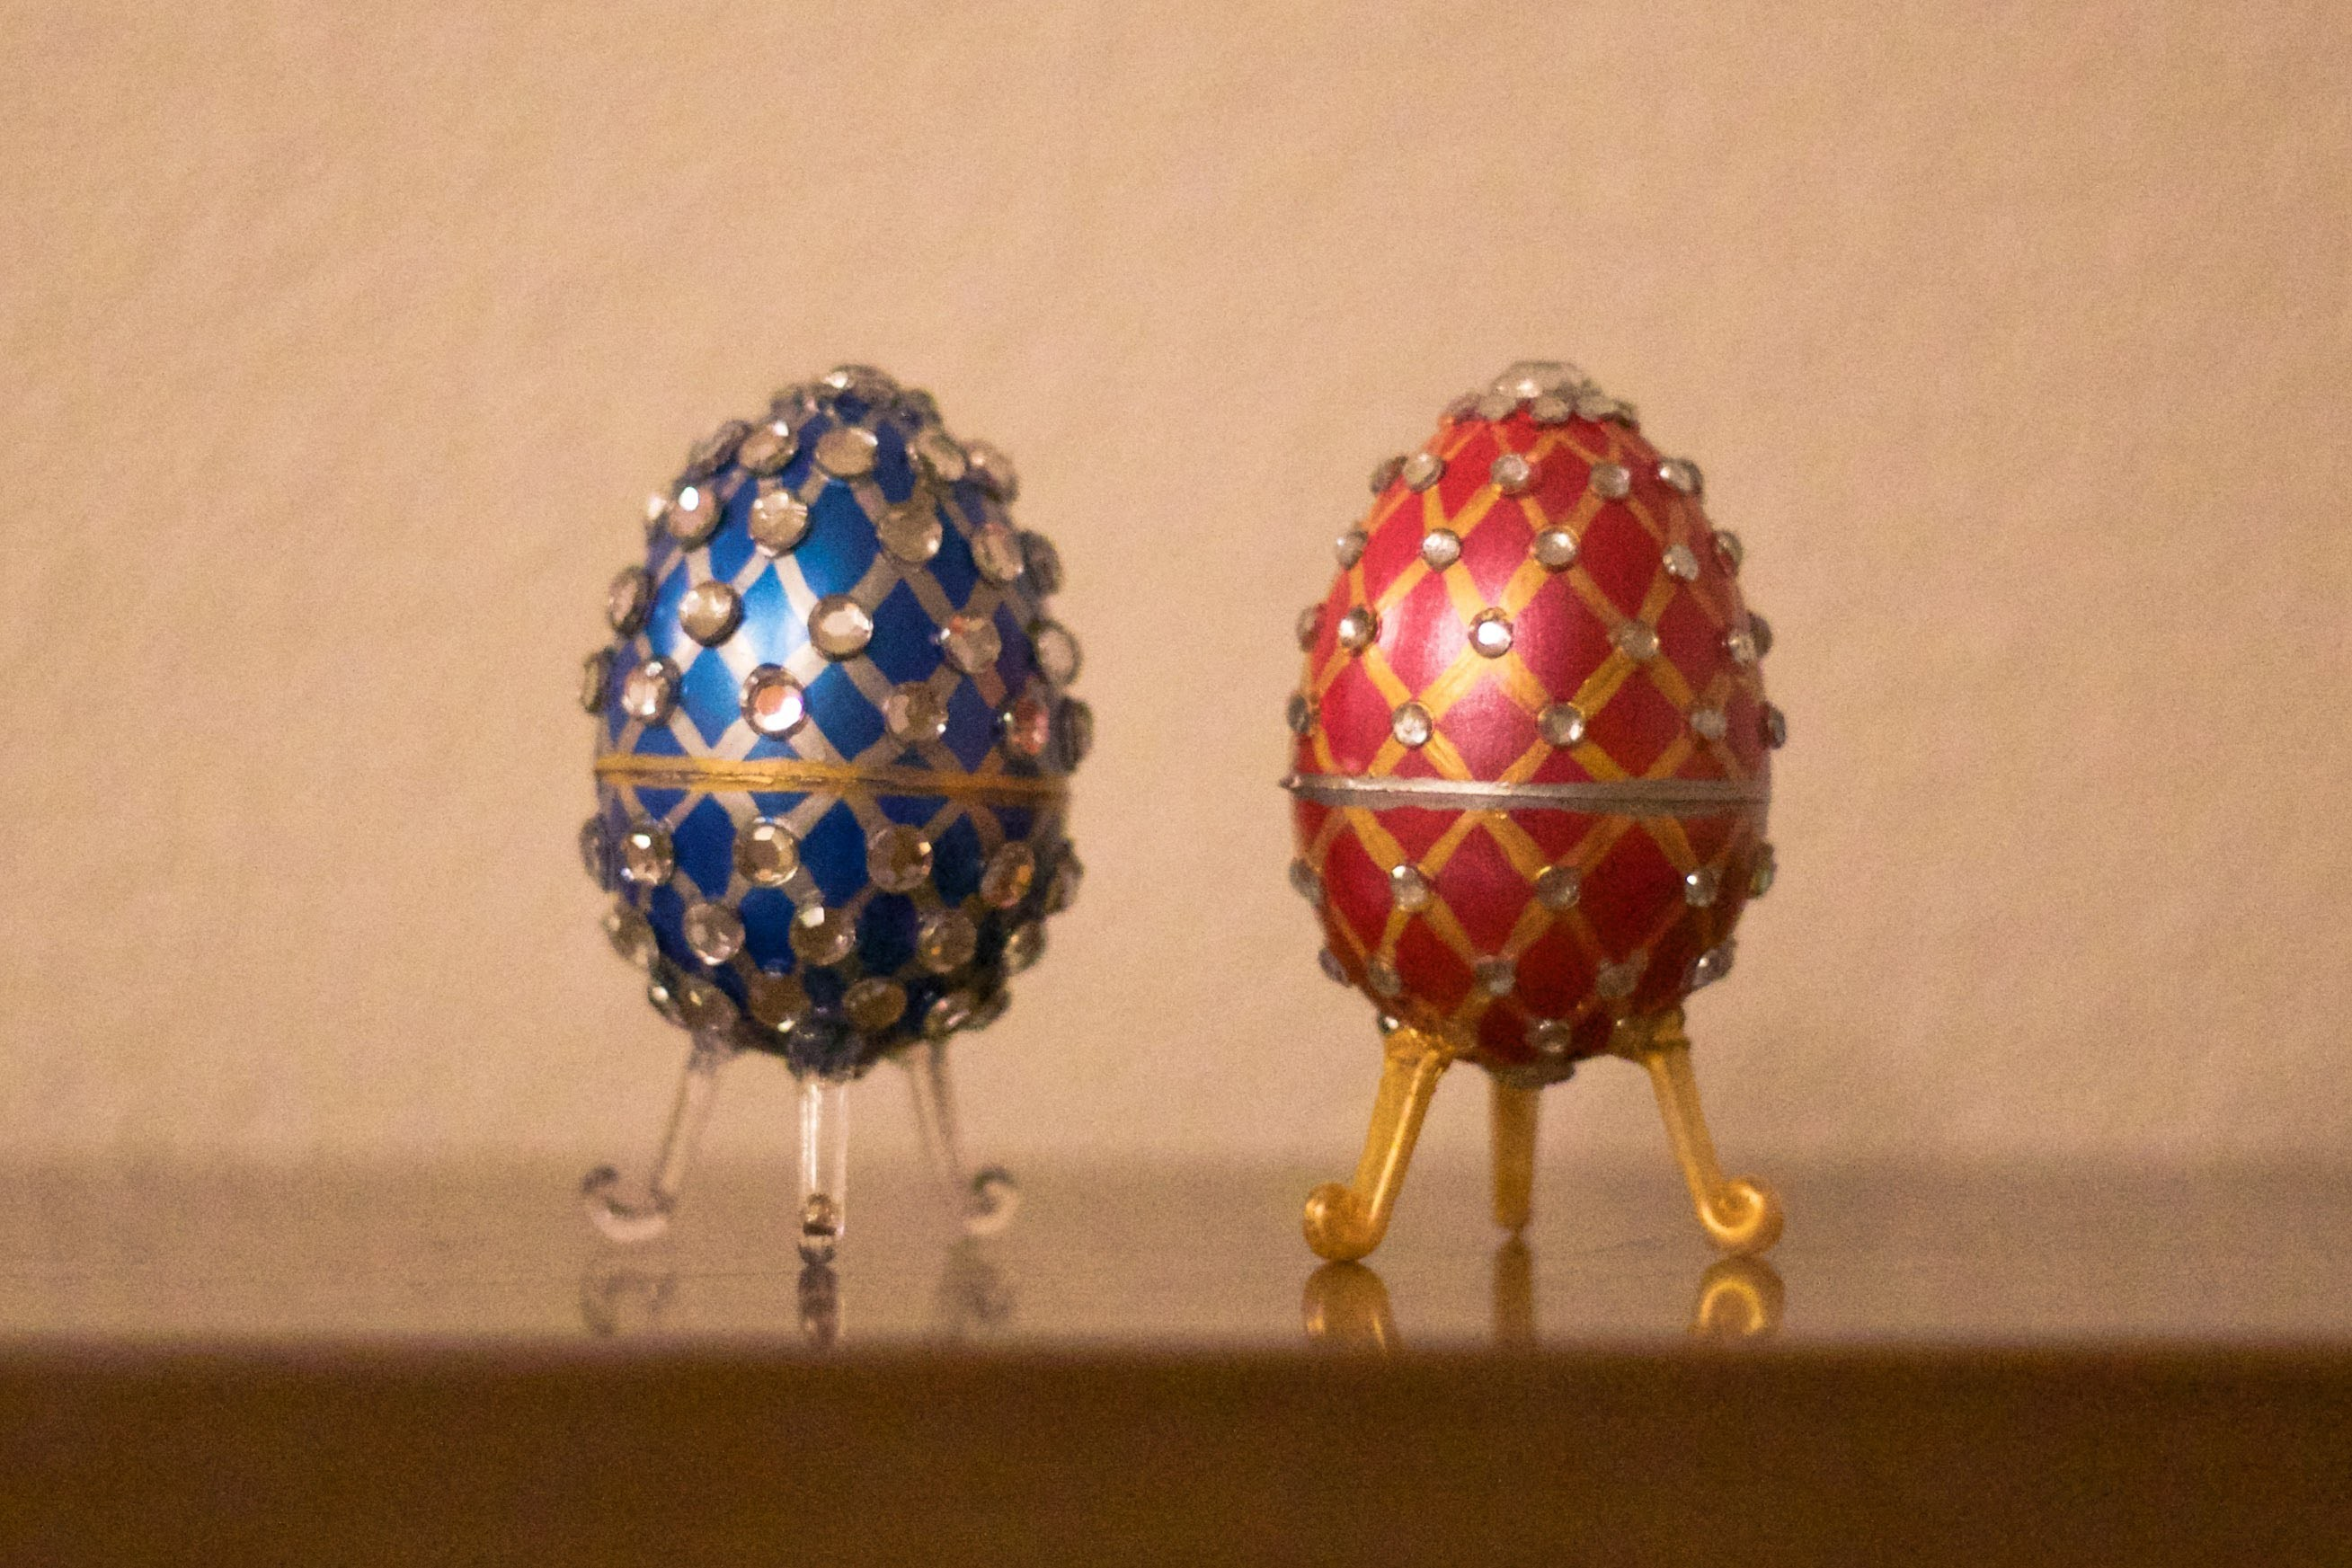 How To Make A Faberge Easter Egg!